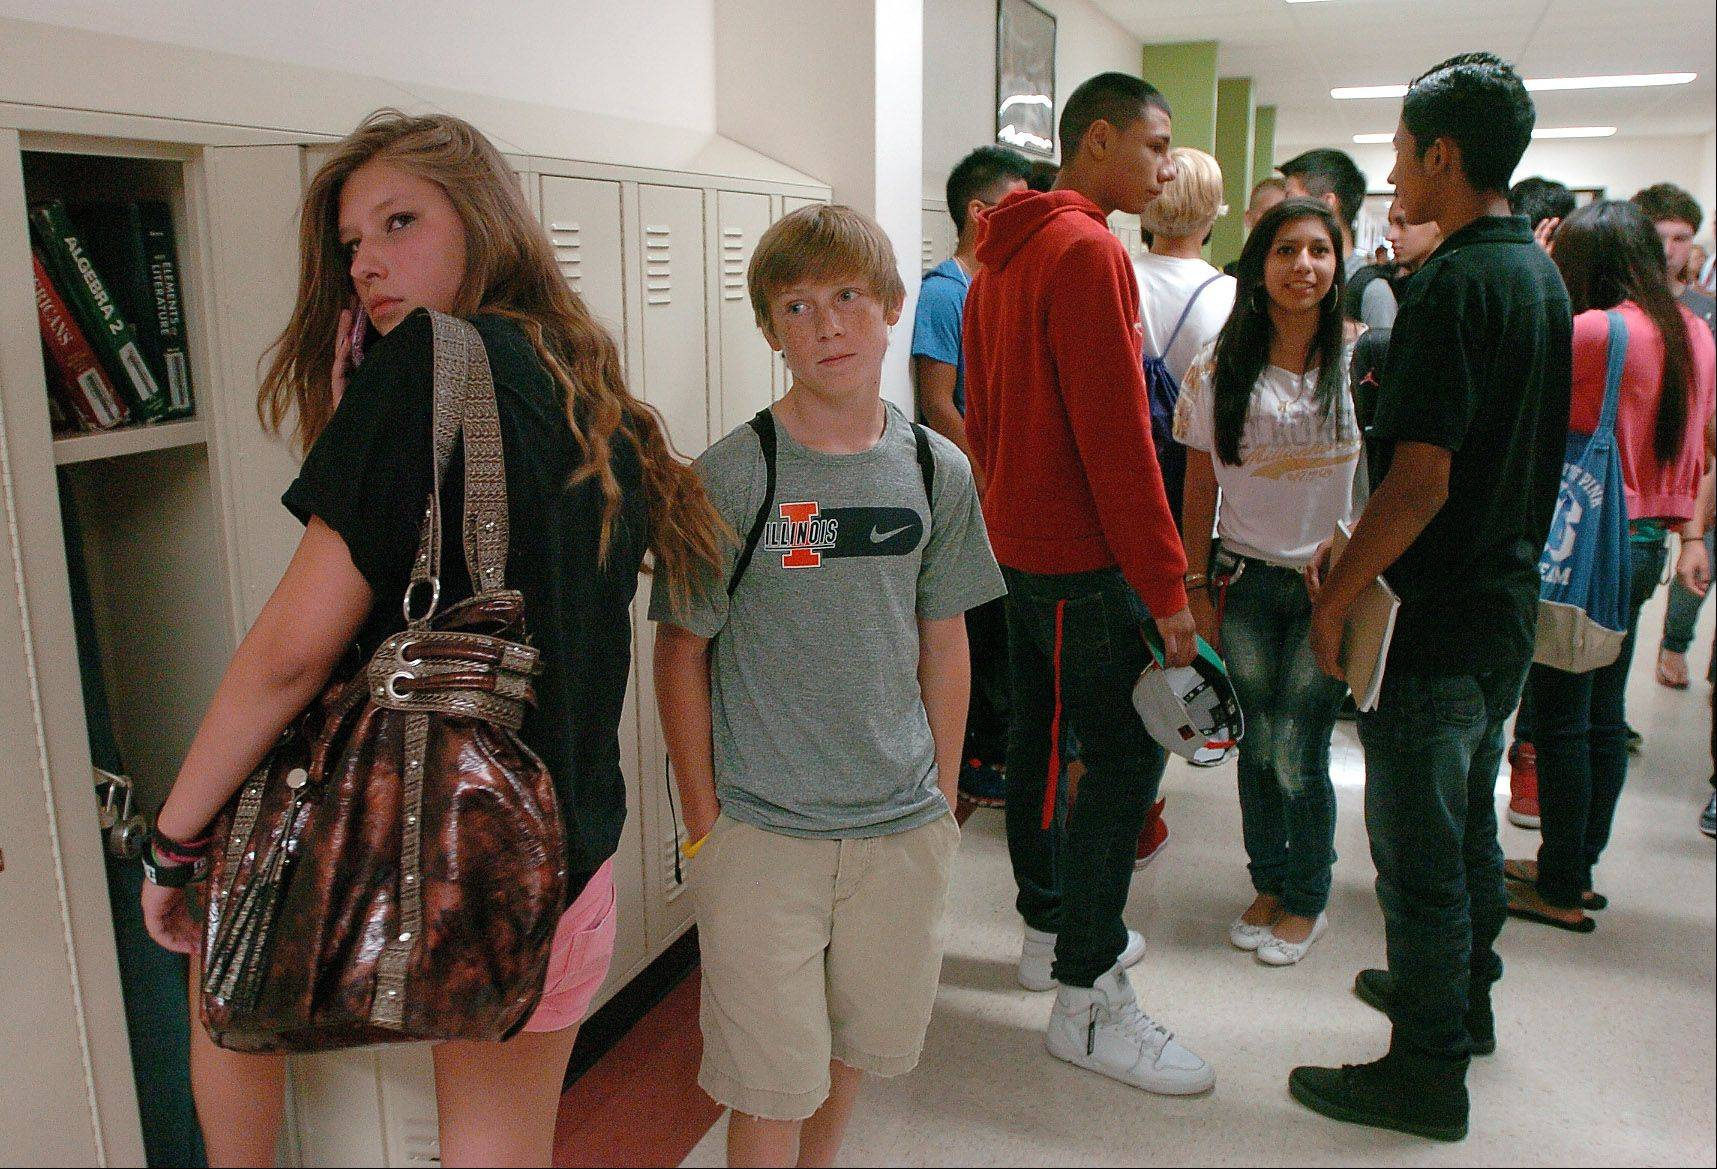 Freshman Christian Kanzler waits outside his classroom on the first day of school at Grant High School in Fox Lake Wednesday.